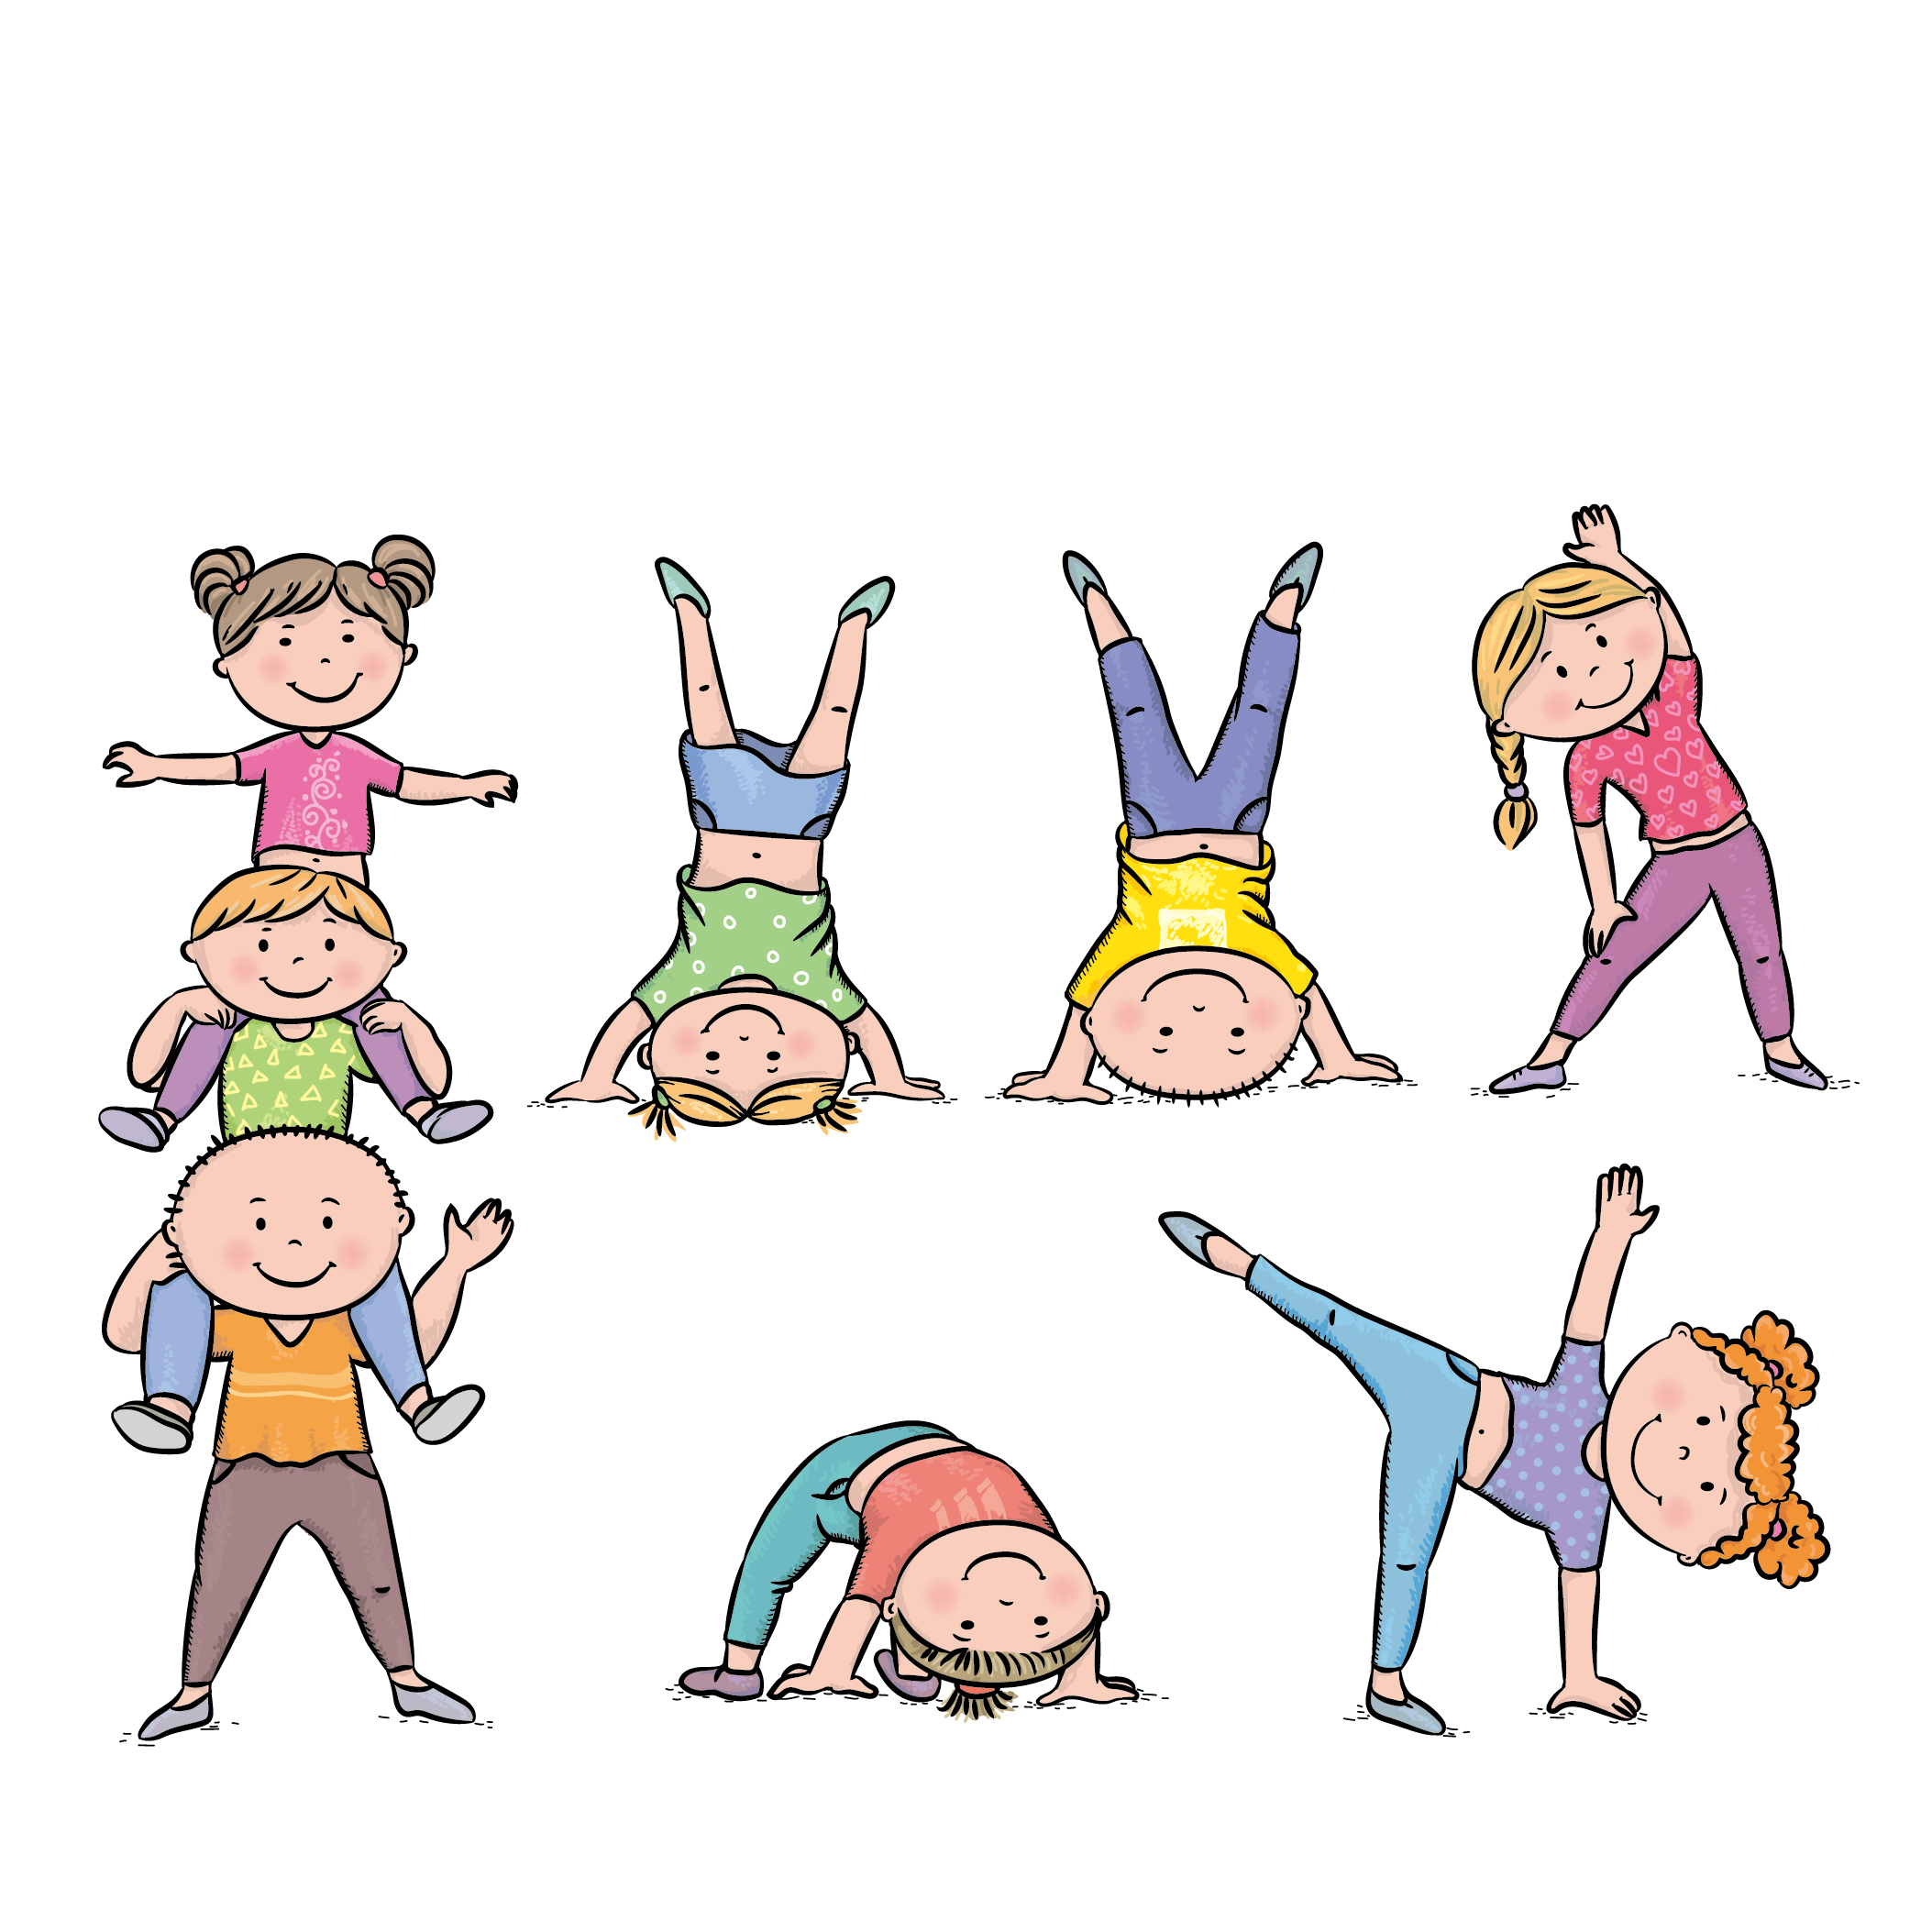 Exercise child stock illustration. Exercising clipart physical play